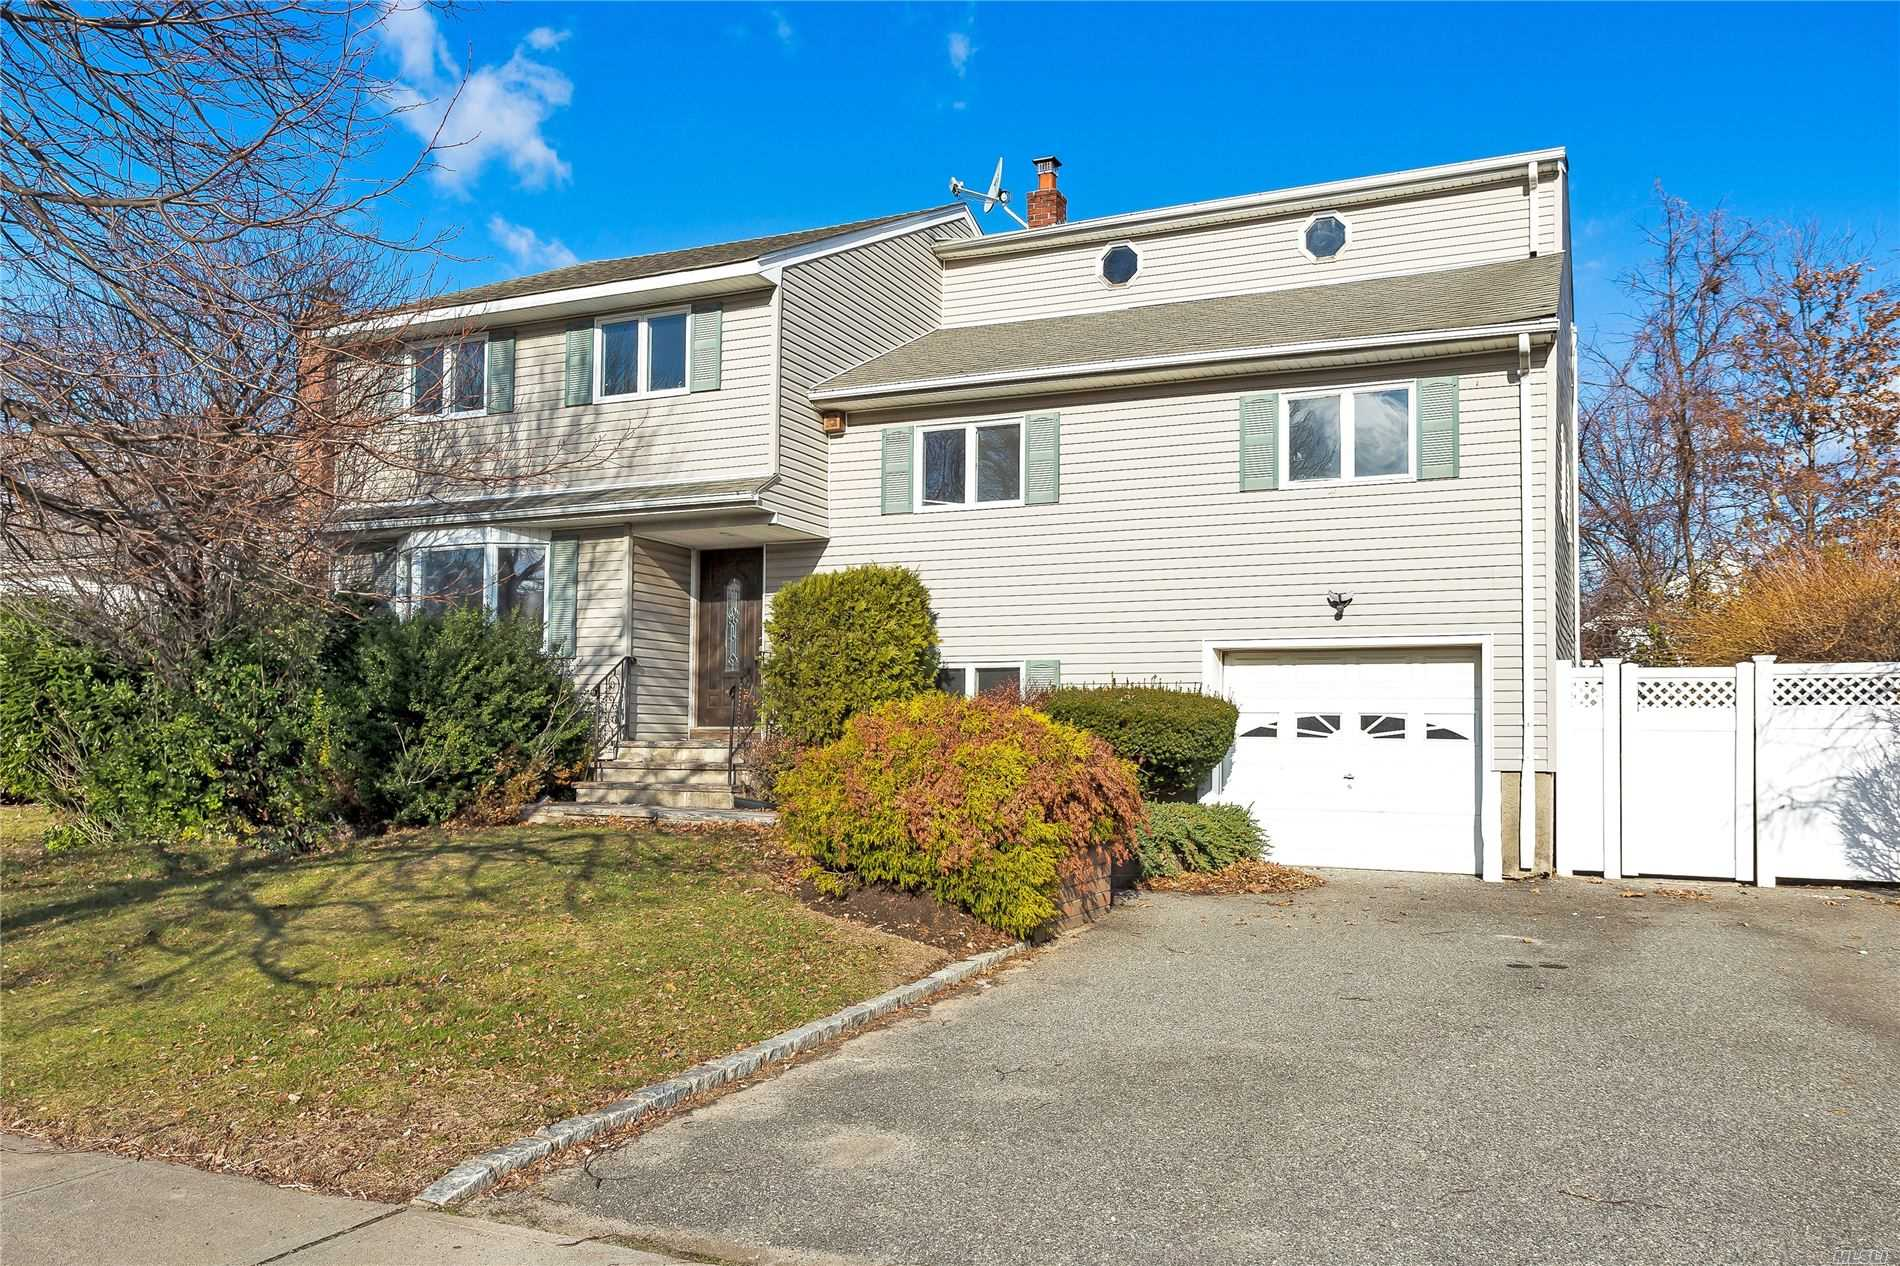 11 Lincrest St - Syosset, New York